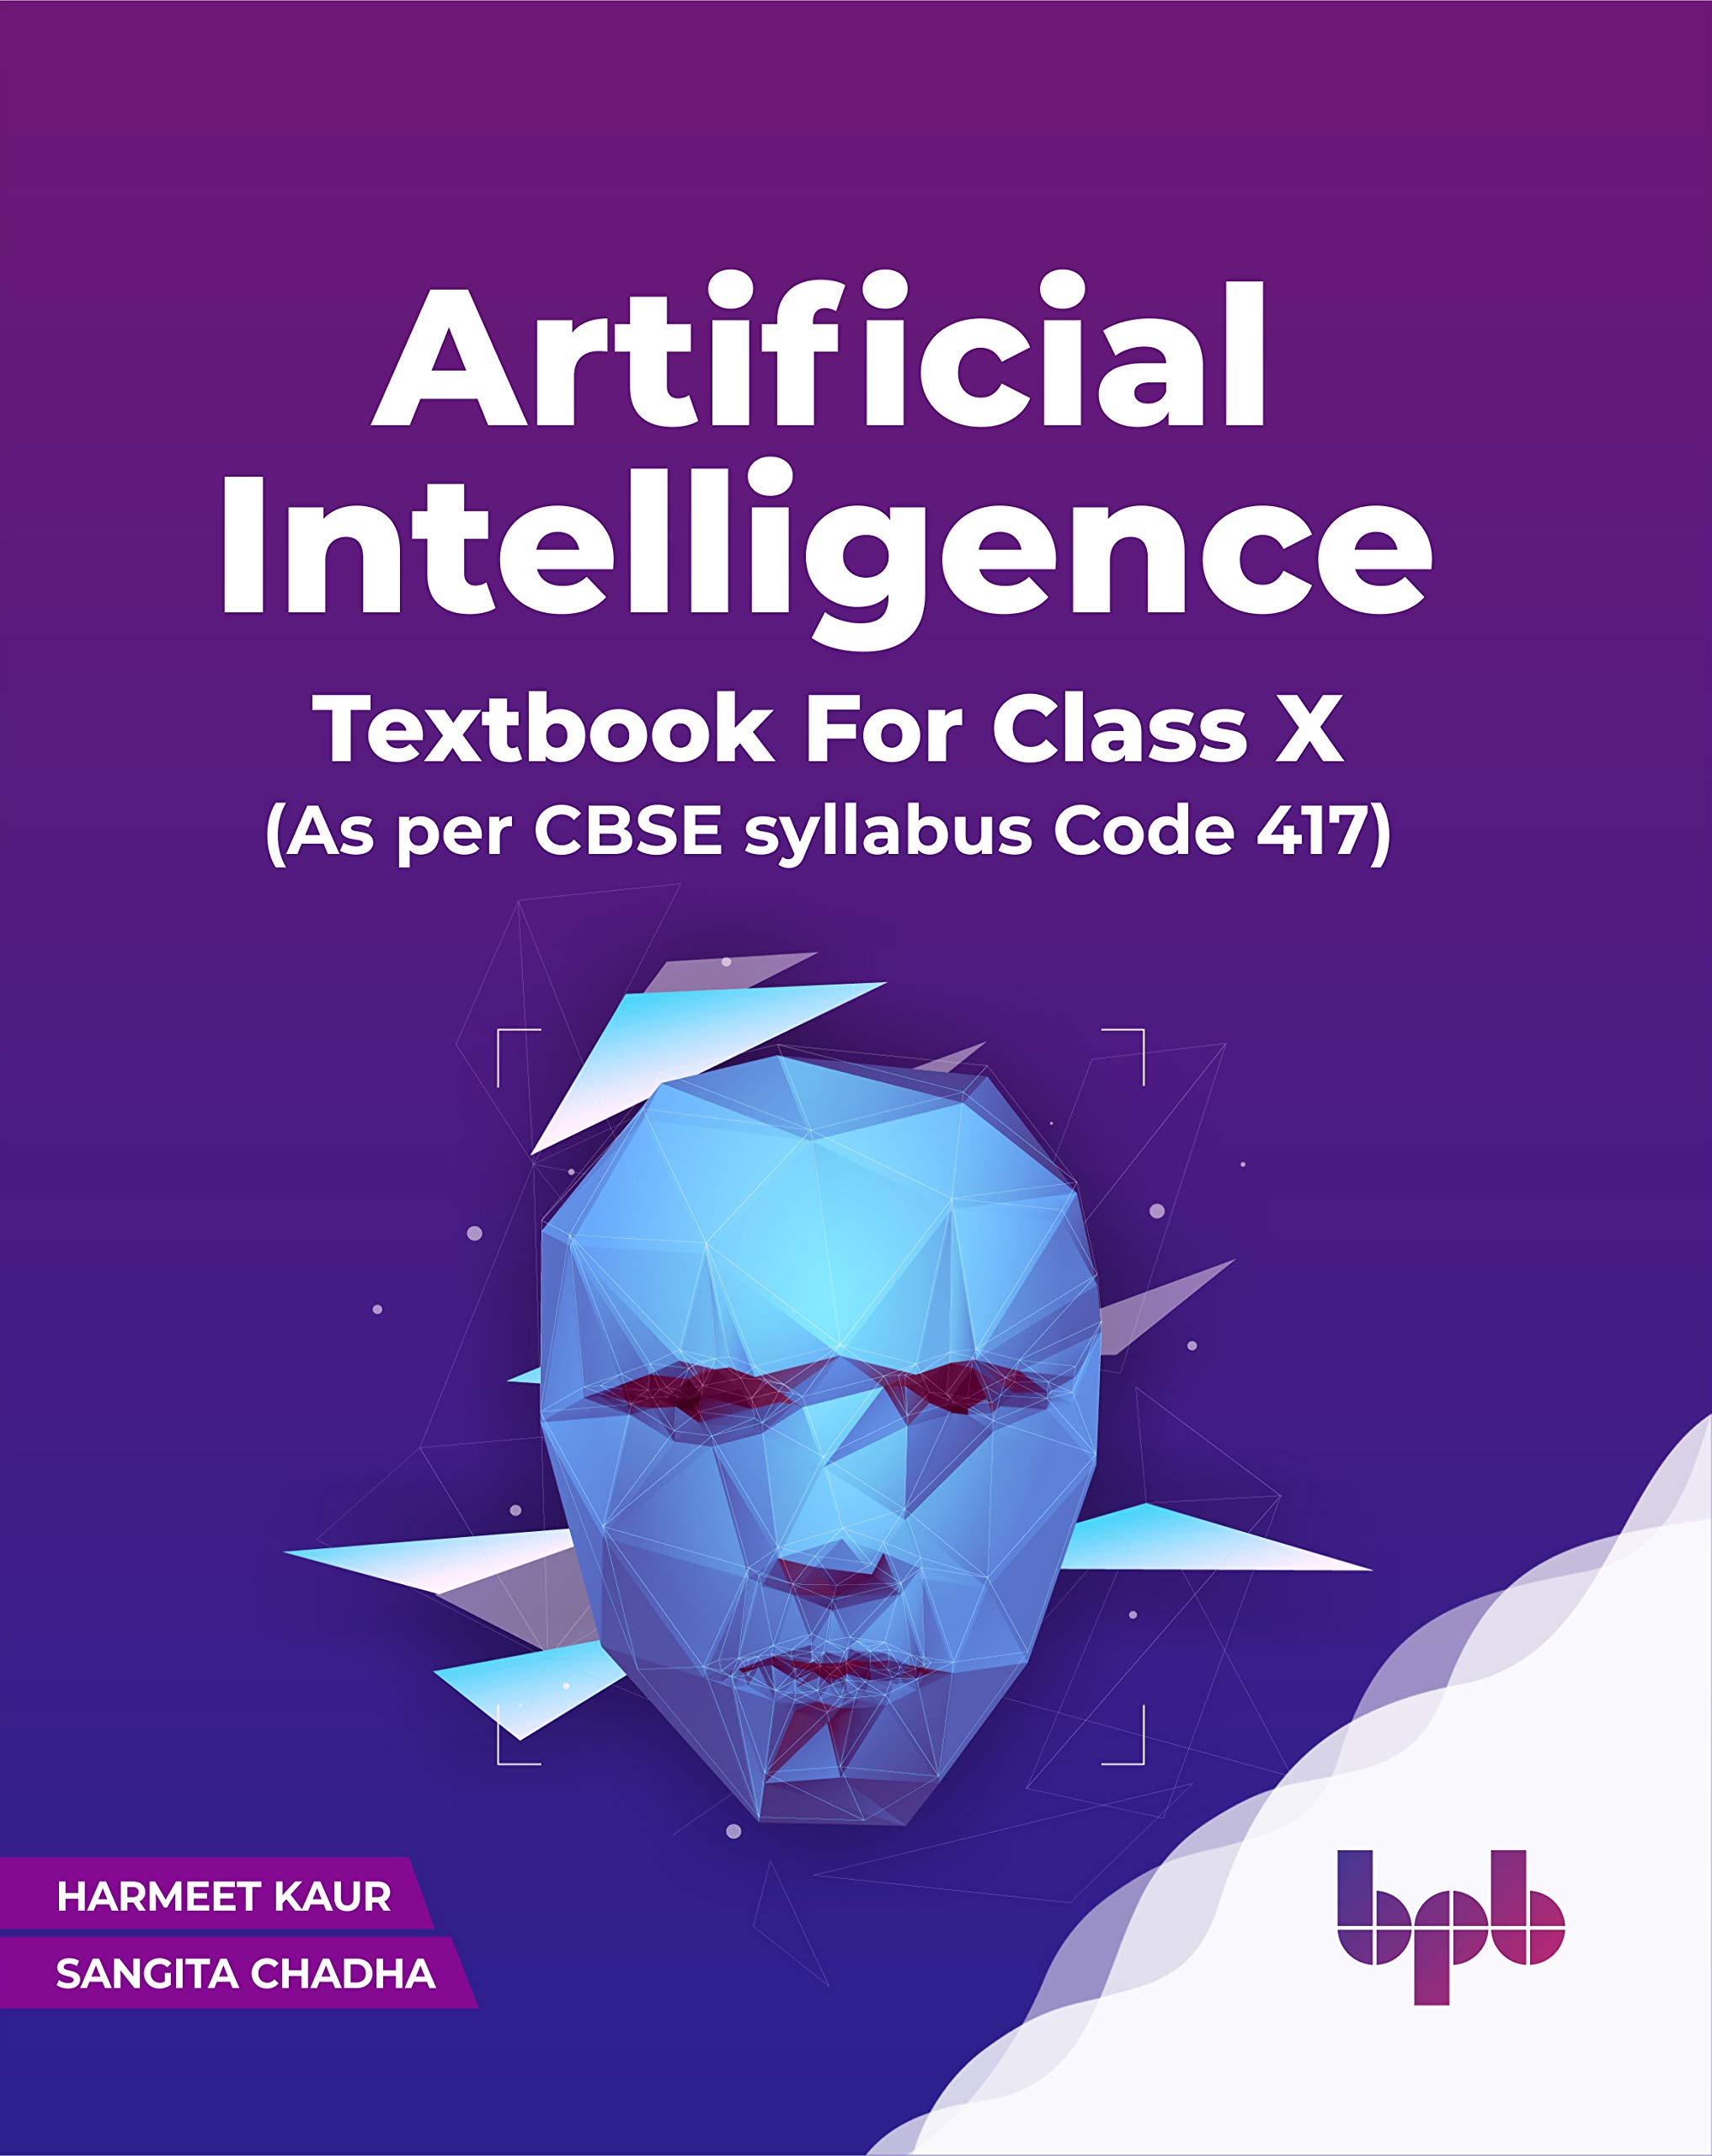 Artificial Intelligence- Textbook For Class X